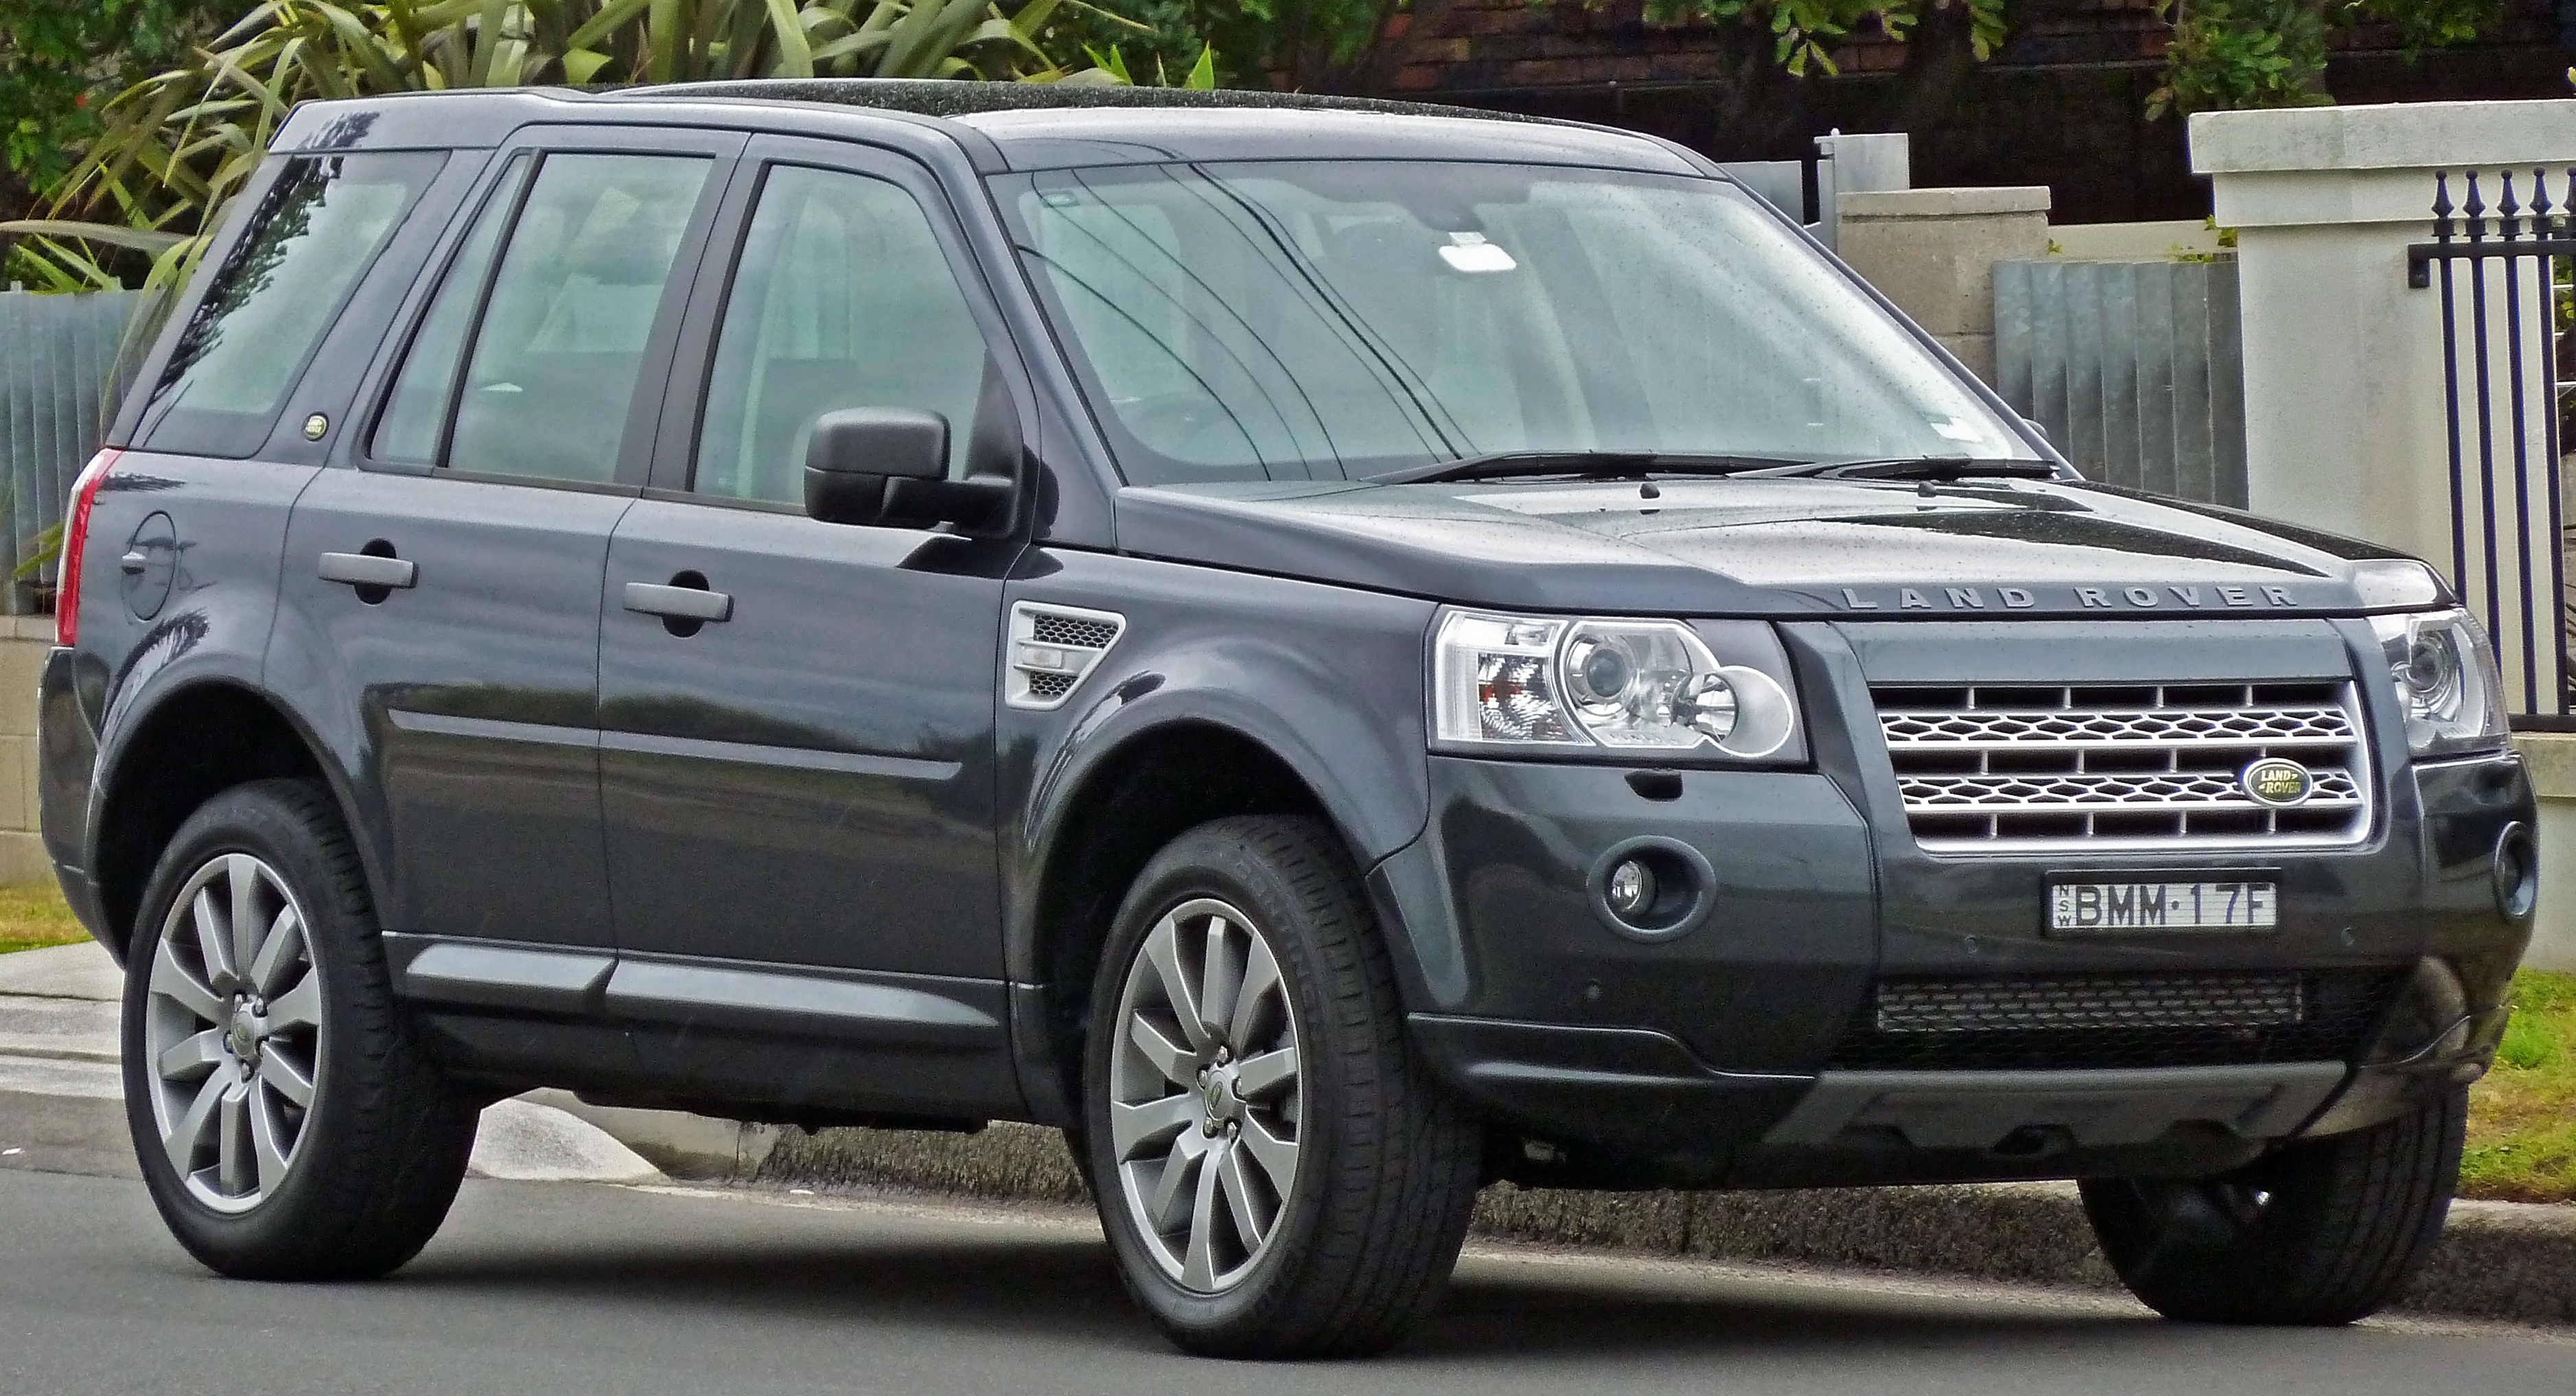 file 2007 2010 land rover freelander 2 lf hse td4 wagon wikimedia commons. Black Bedroom Furniture Sets. Home Design Ideas